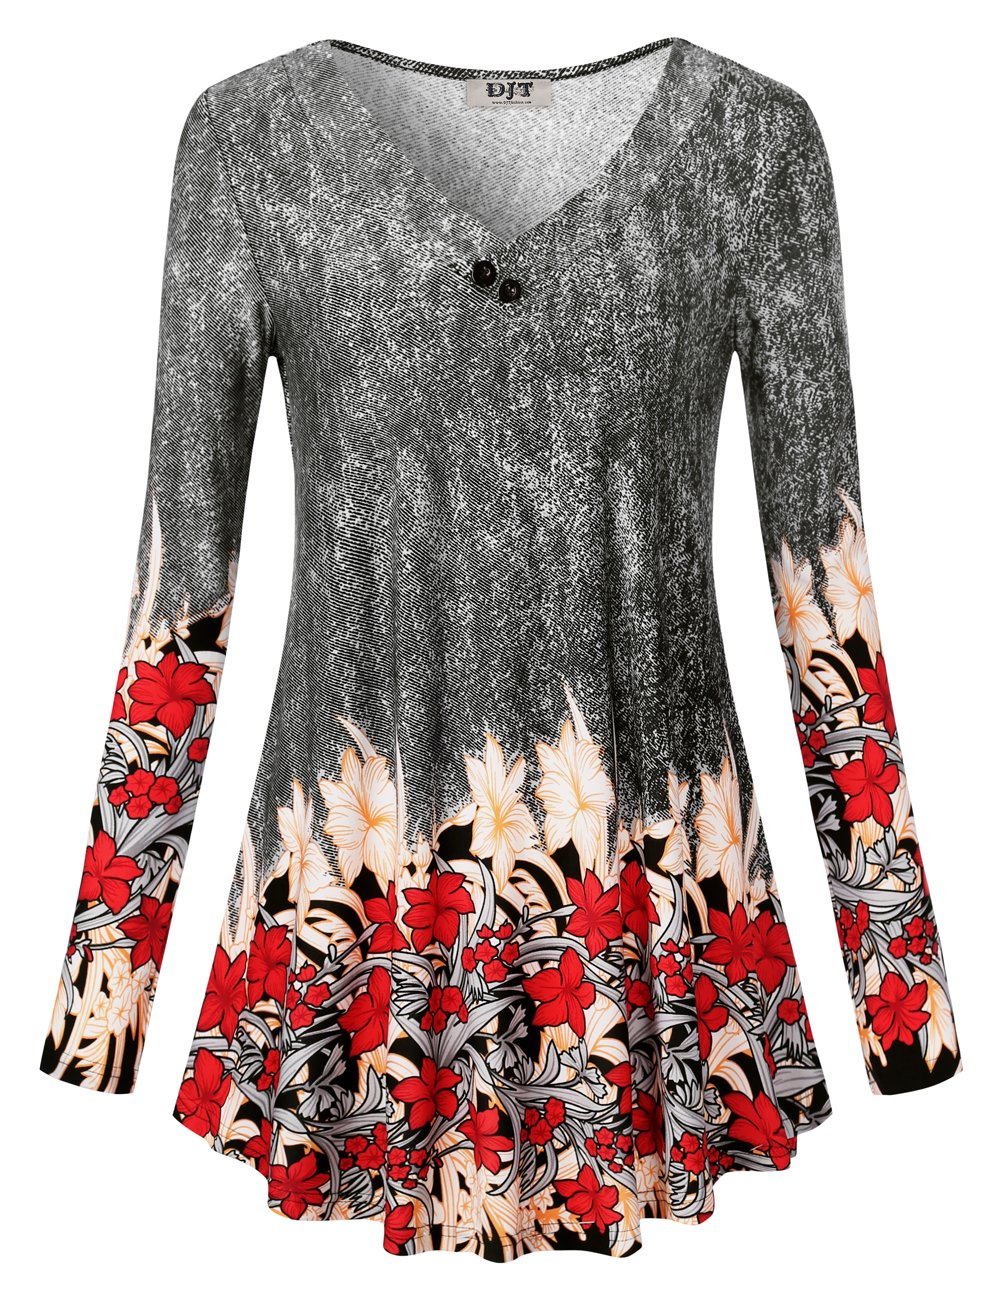 DJT Women's Long Sleeve V Neck Tunic Top Floral Shirt Printed A Line Loose Fit Blouse Flared Casual Tunic Black Floral L